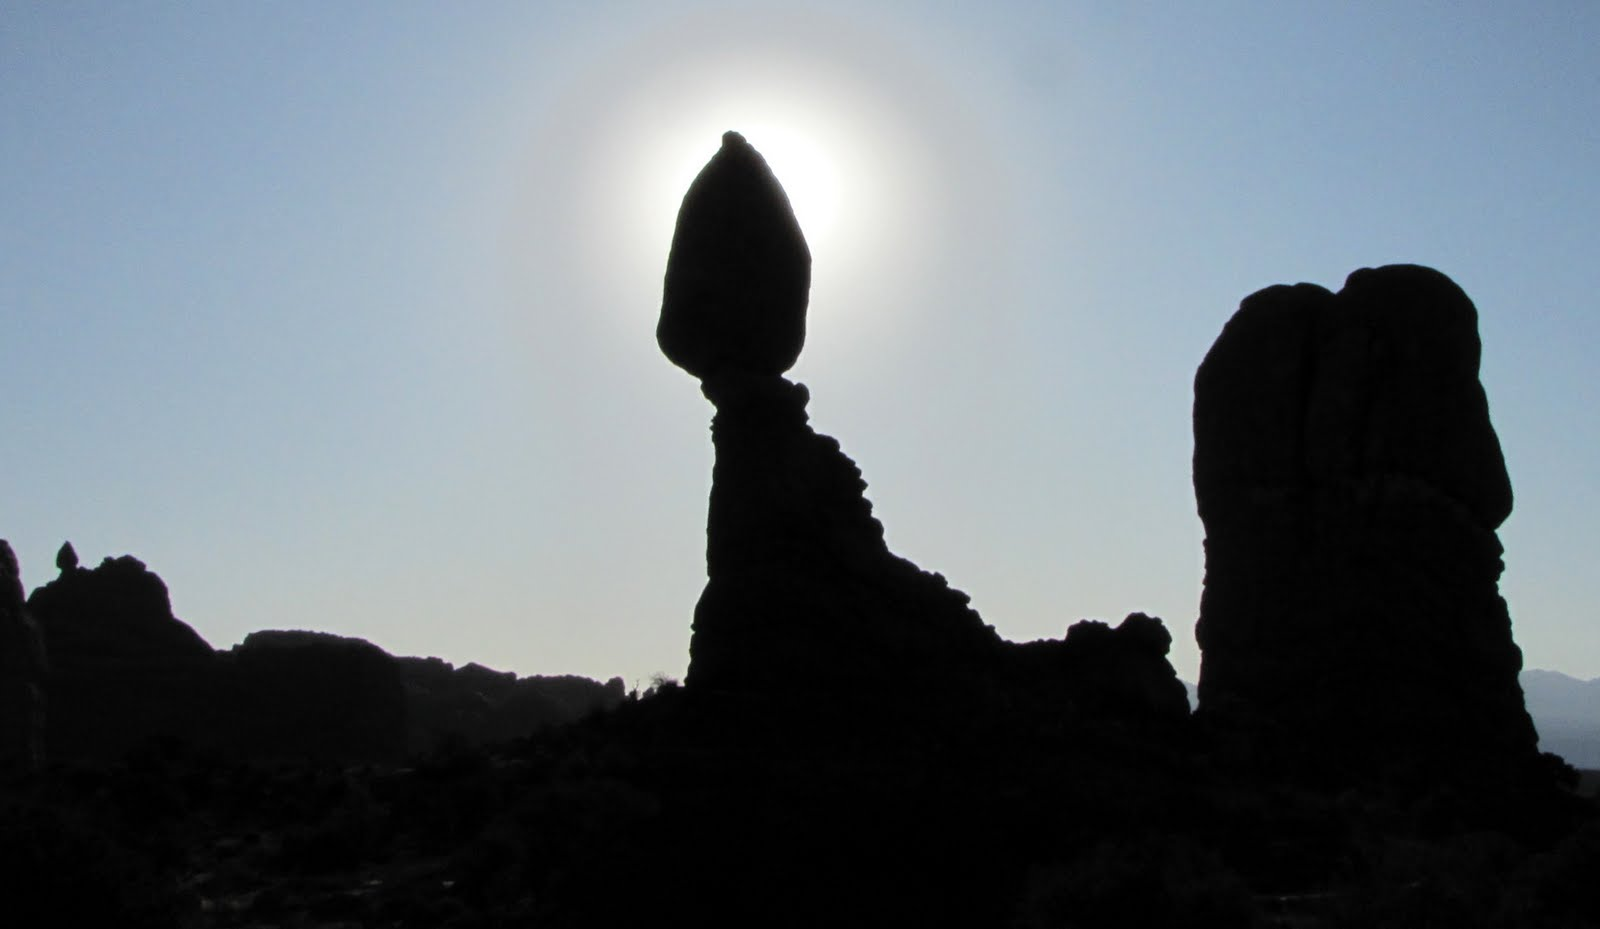 The Balanced Stone with the Rising Sun